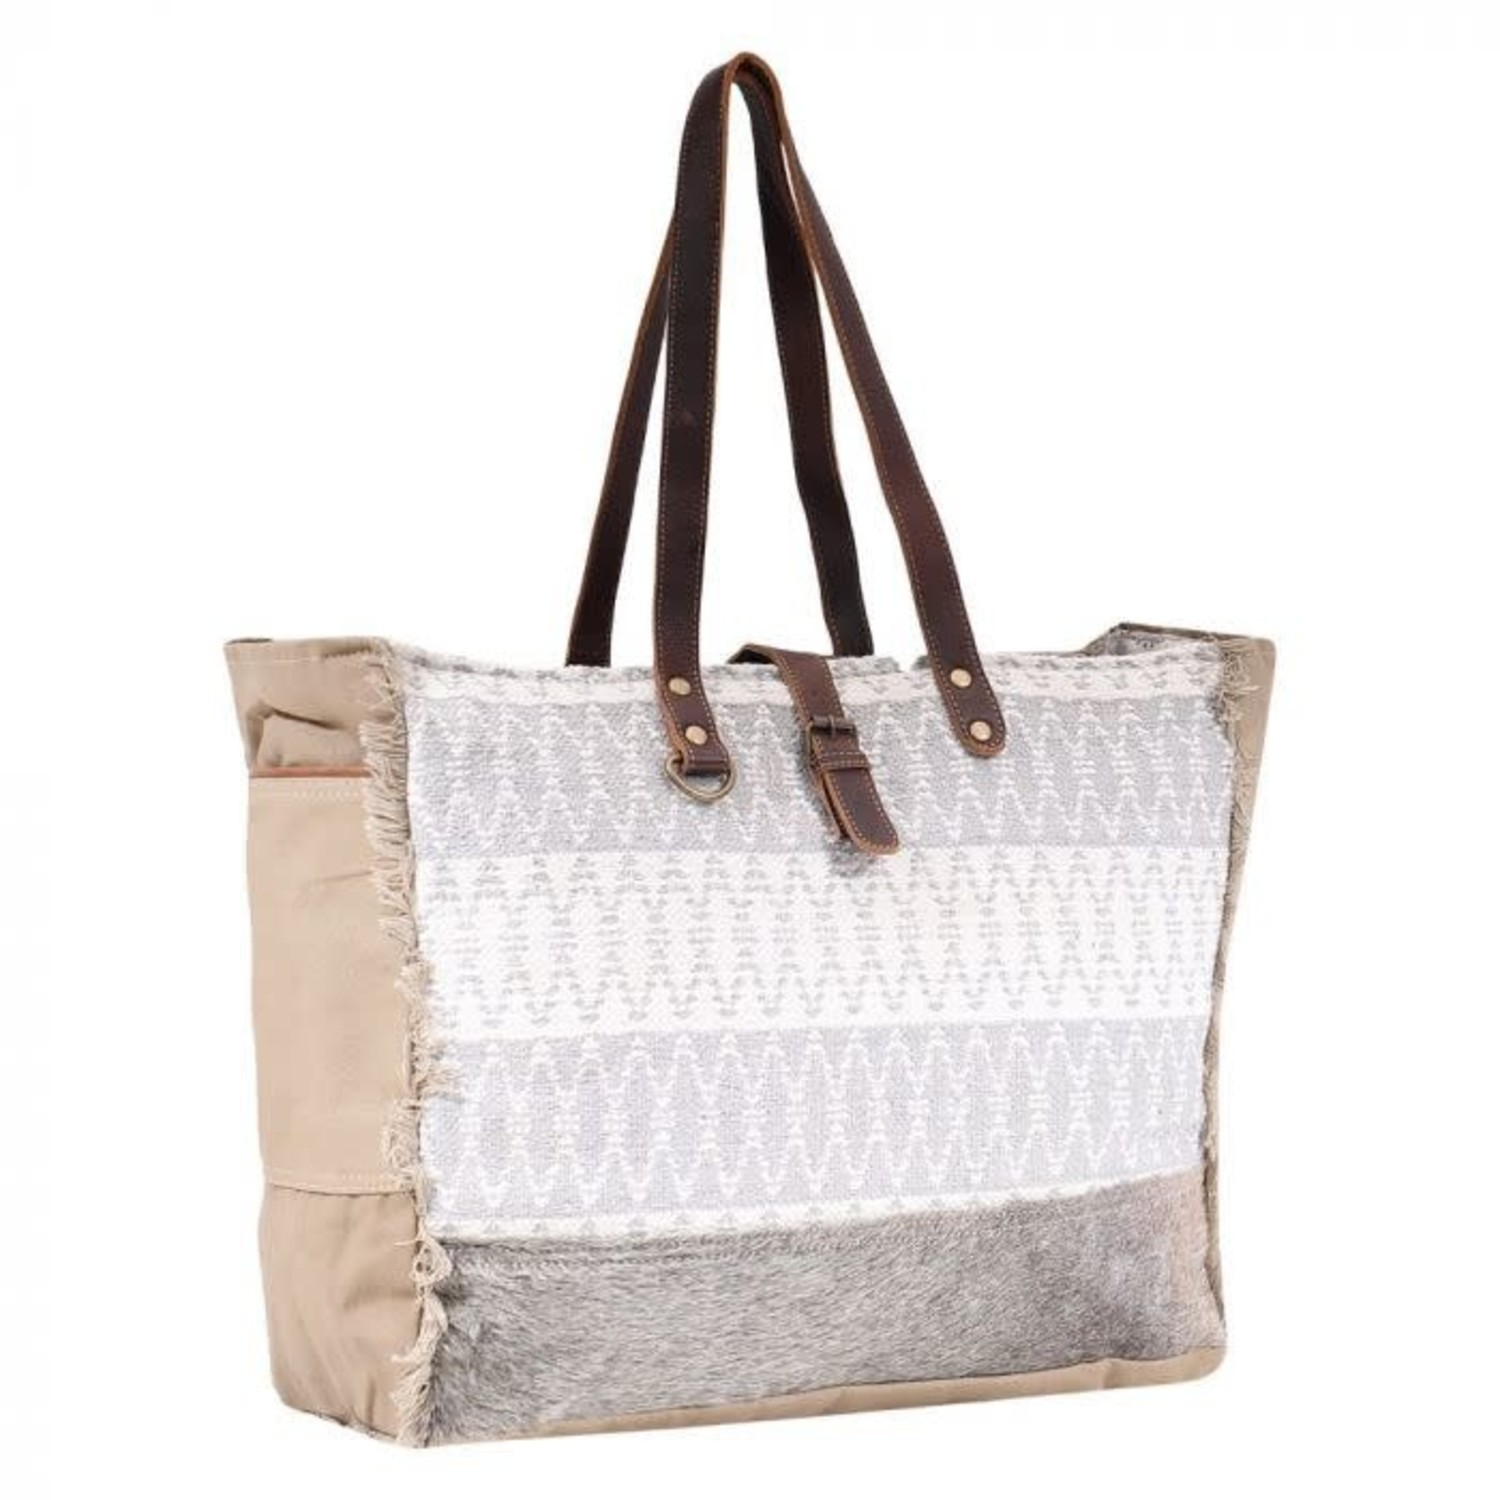 Myra 1620 Weave N Nap Weekender Bag Society Boutique Get the lowest price on your favorite brands at poshmark. myra handbags myra 1620 weave n nap weekender bag